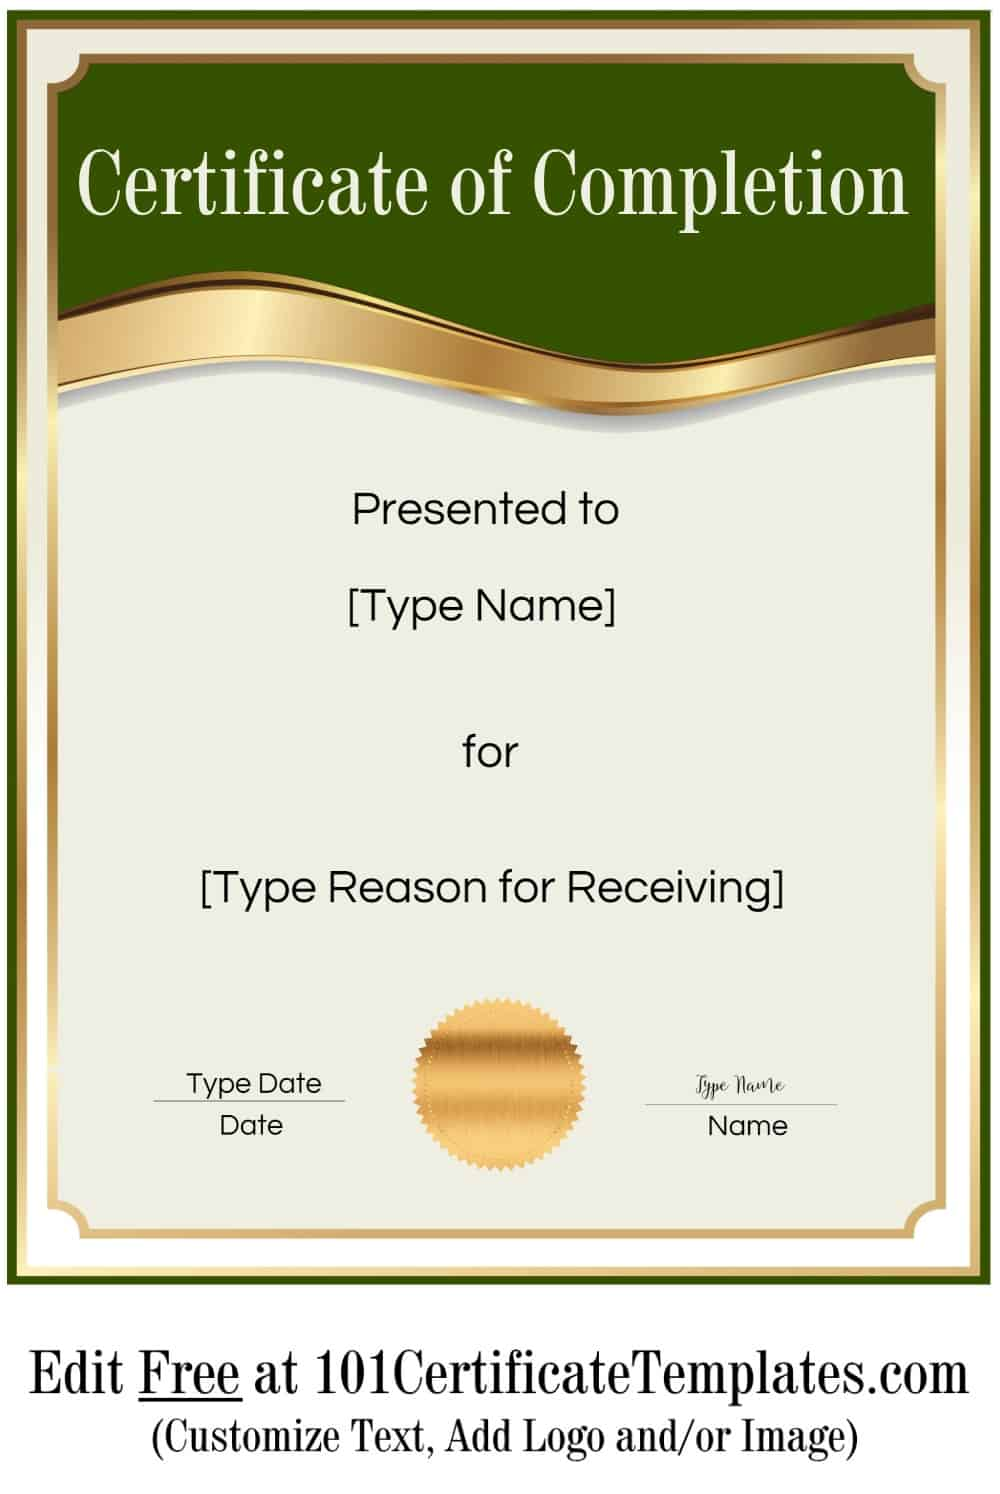 Free Certificate Of Completion Customize Online Then Print